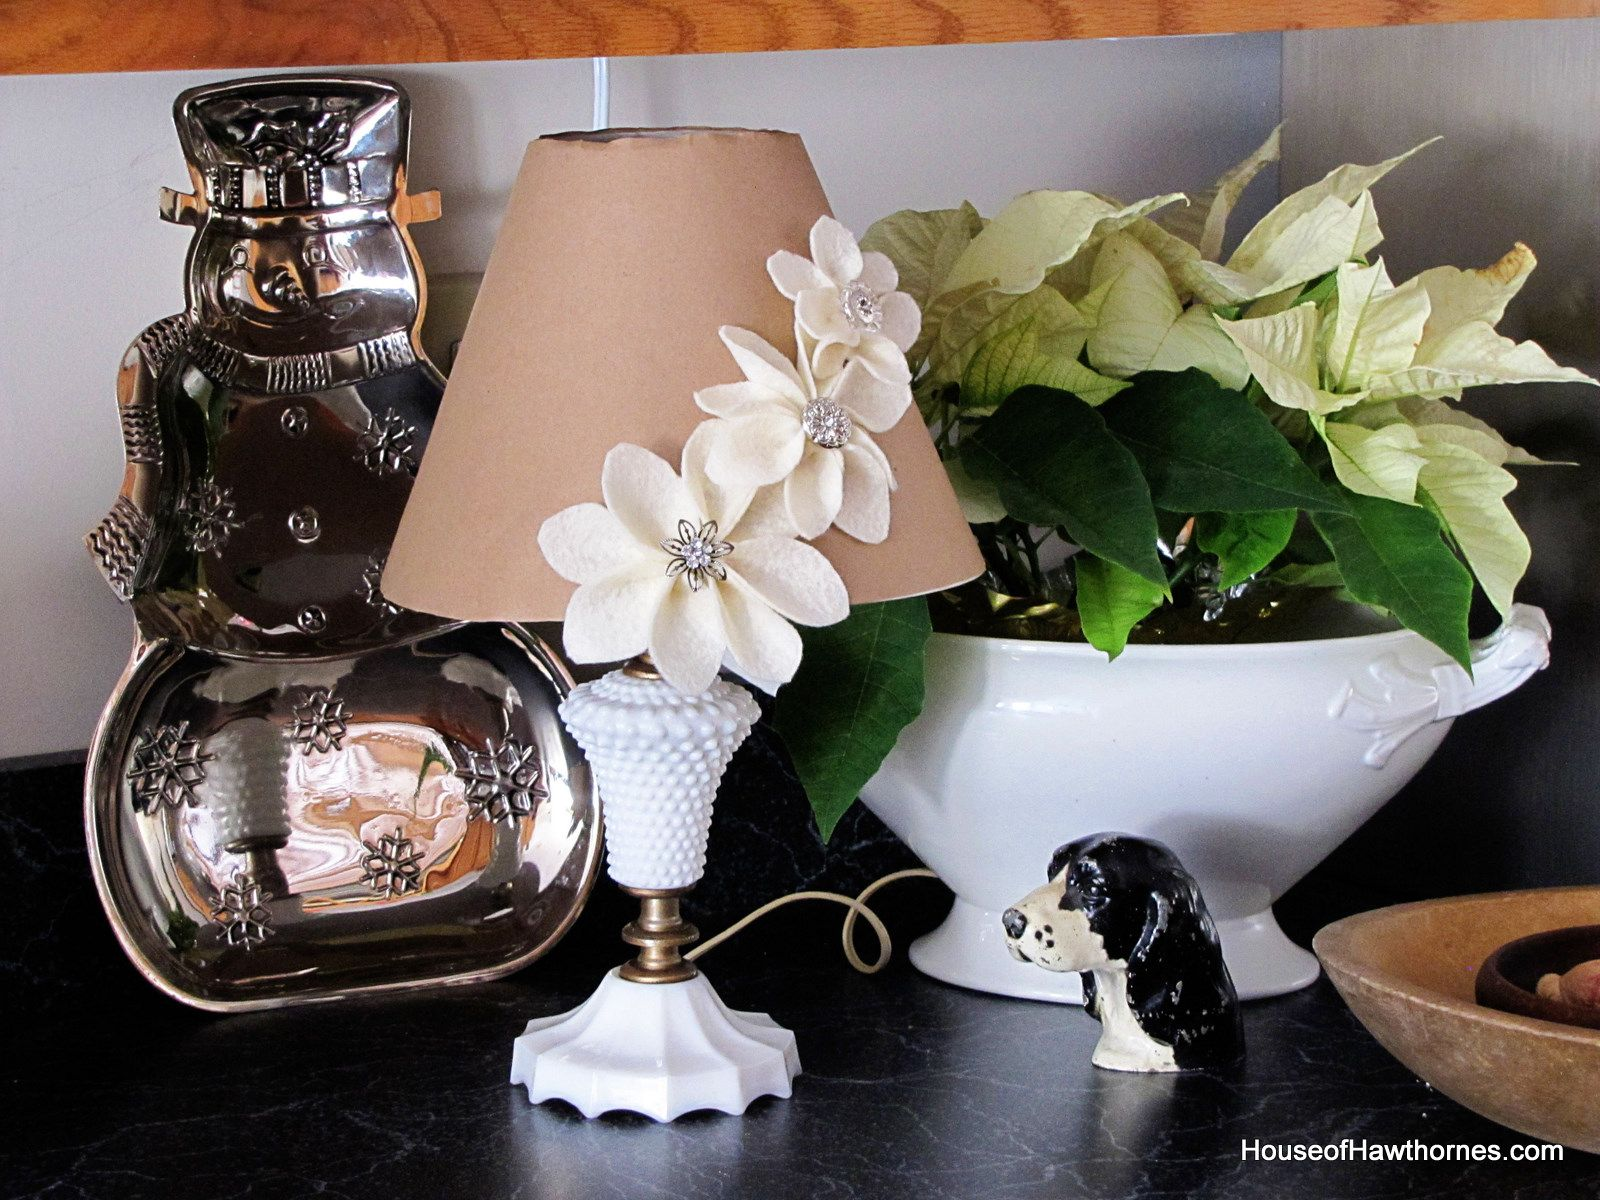 House of Hawthornes: Milk Glass At Home